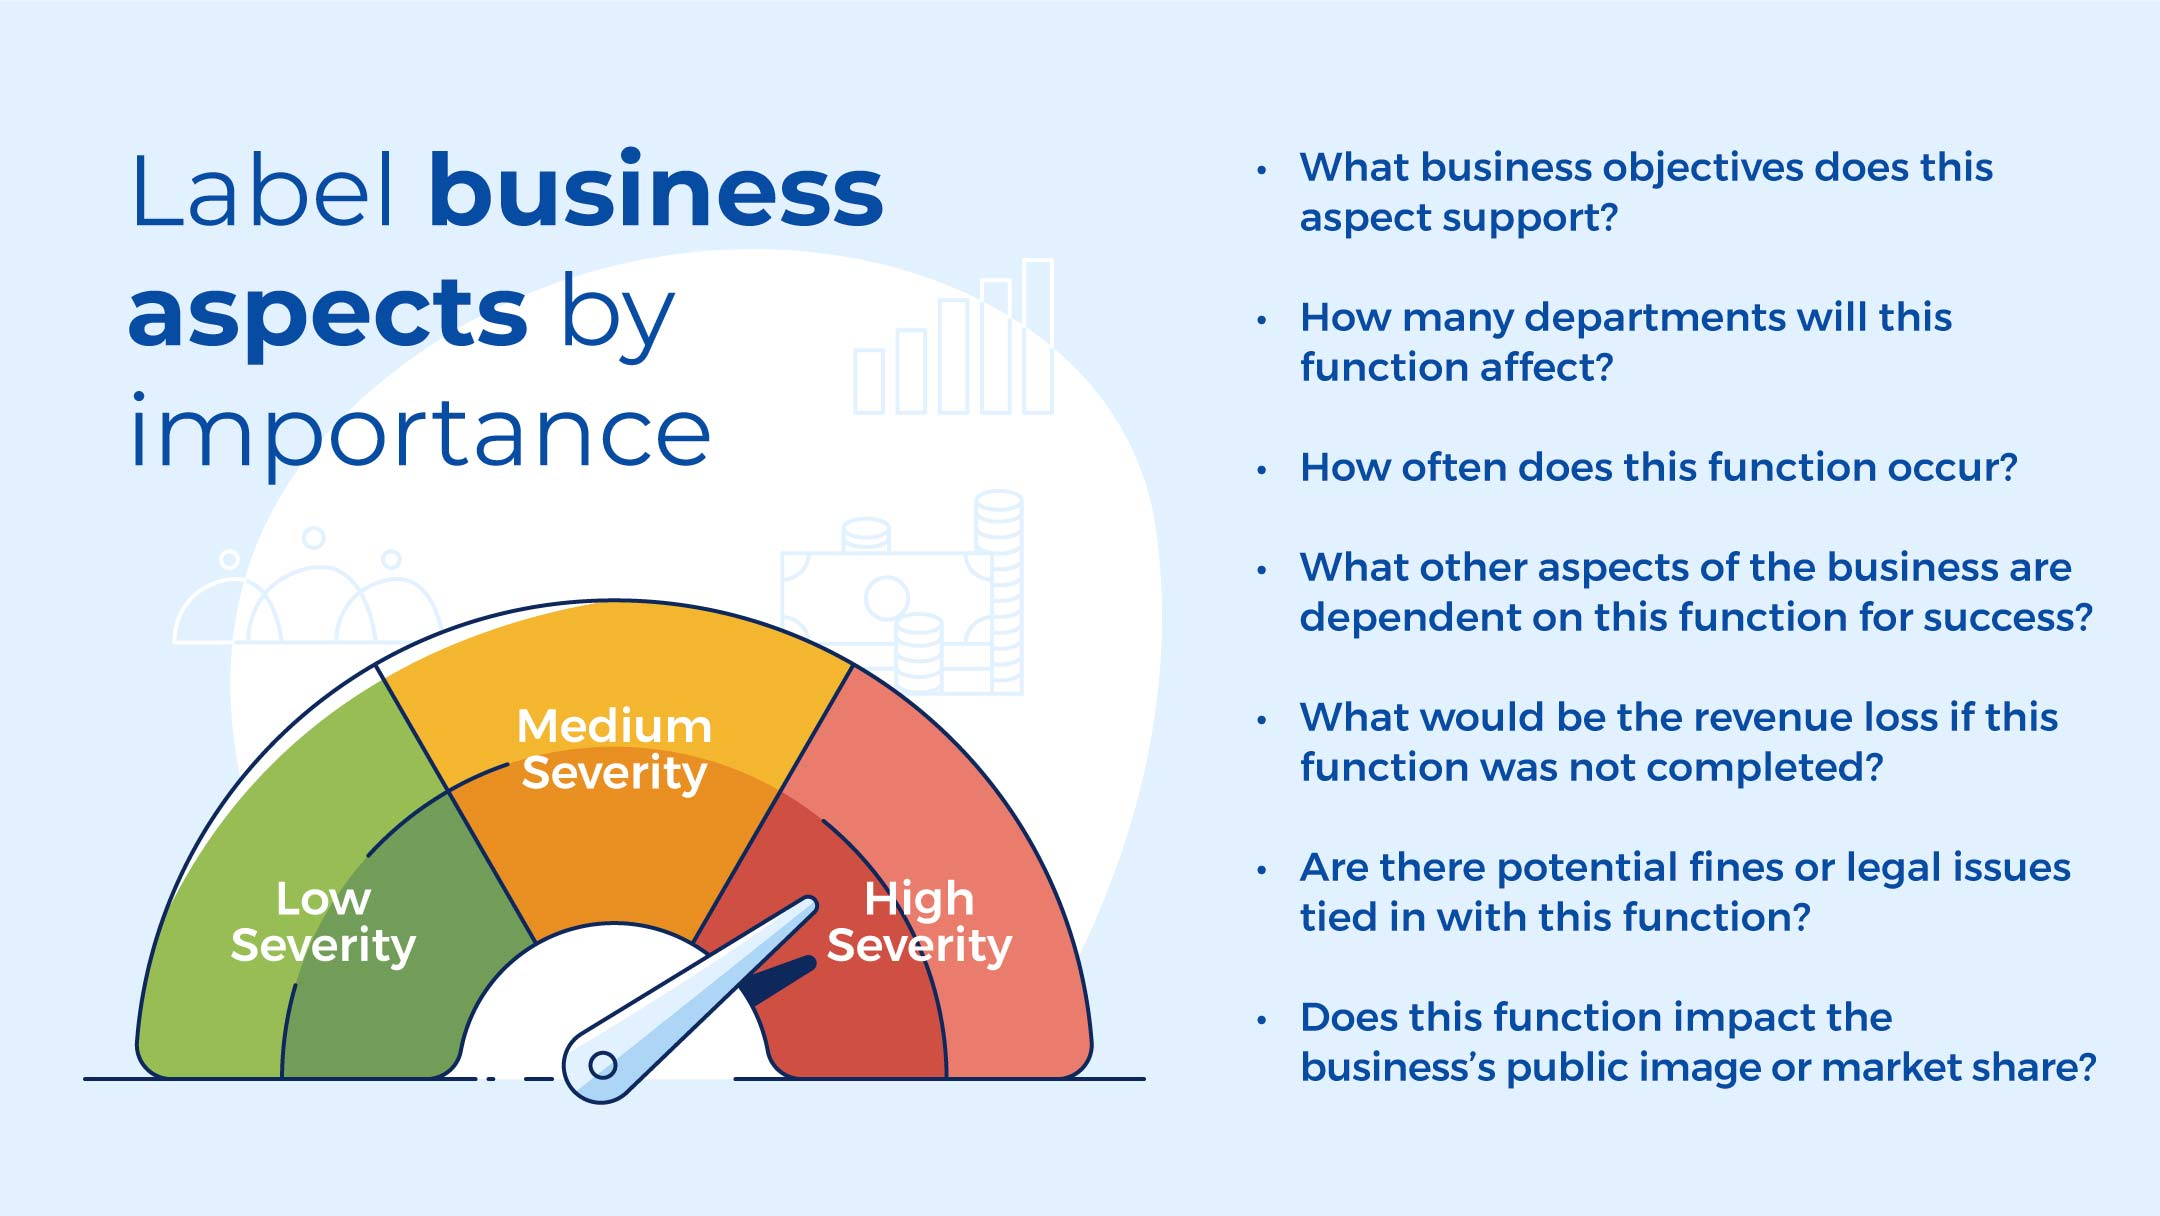 rate business aspects by importance